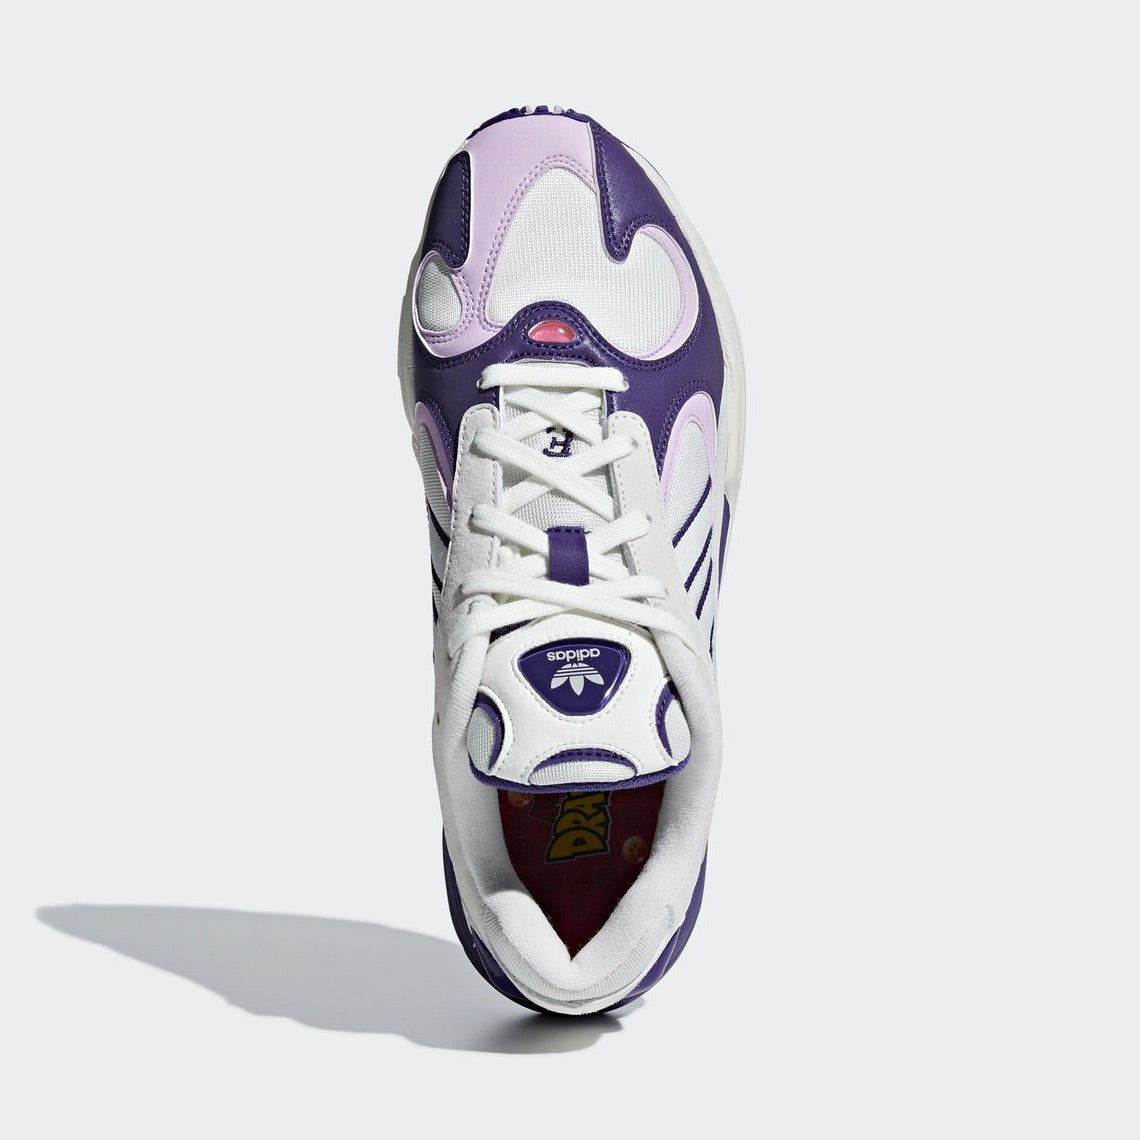 Twthzpq Two Sneakers First Are Ball Dragon Goku Amp; Adidas' Frieza m0Nn8w